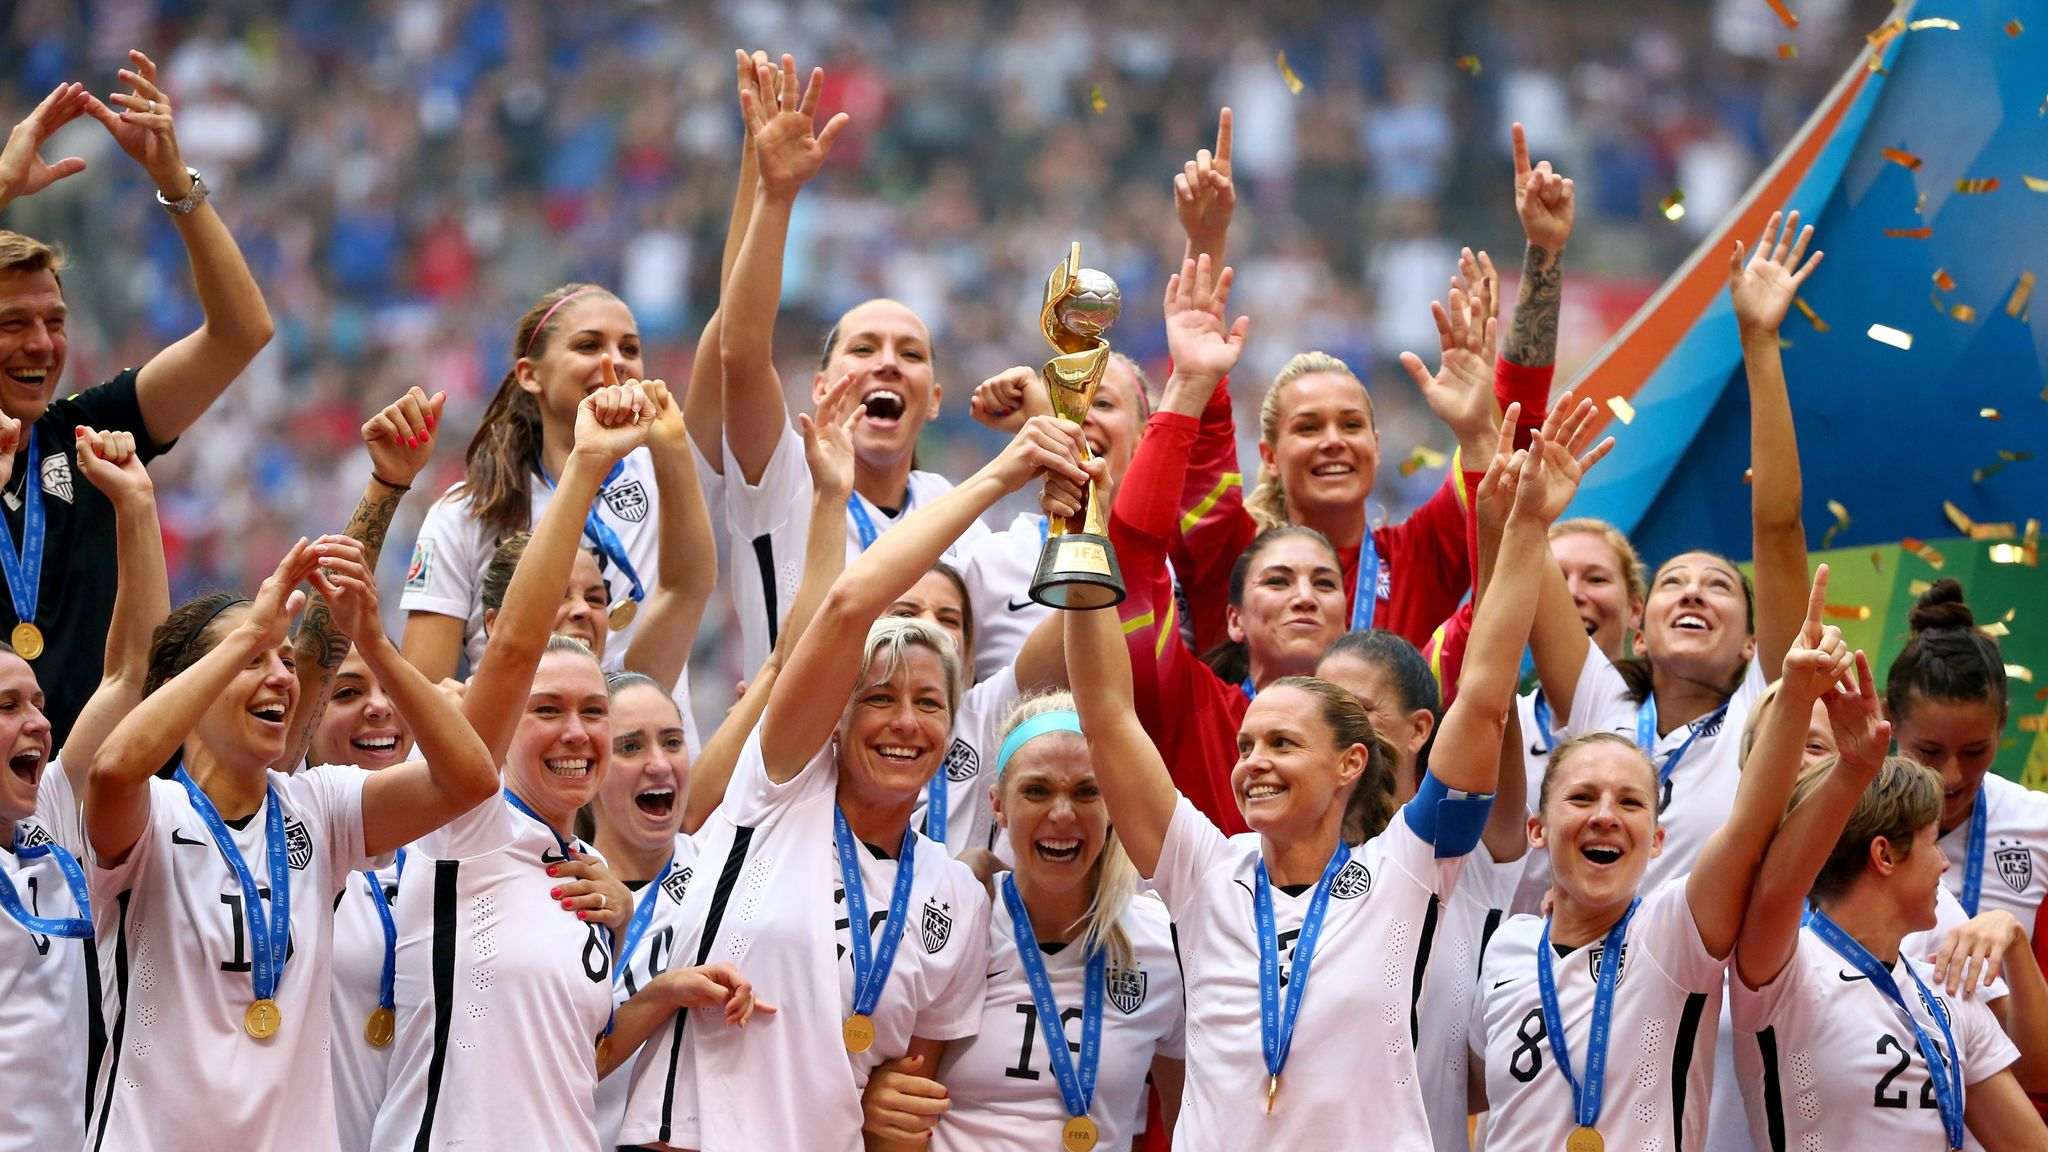 Women's World Cup 2019: Key dates, host cities, stadiums and